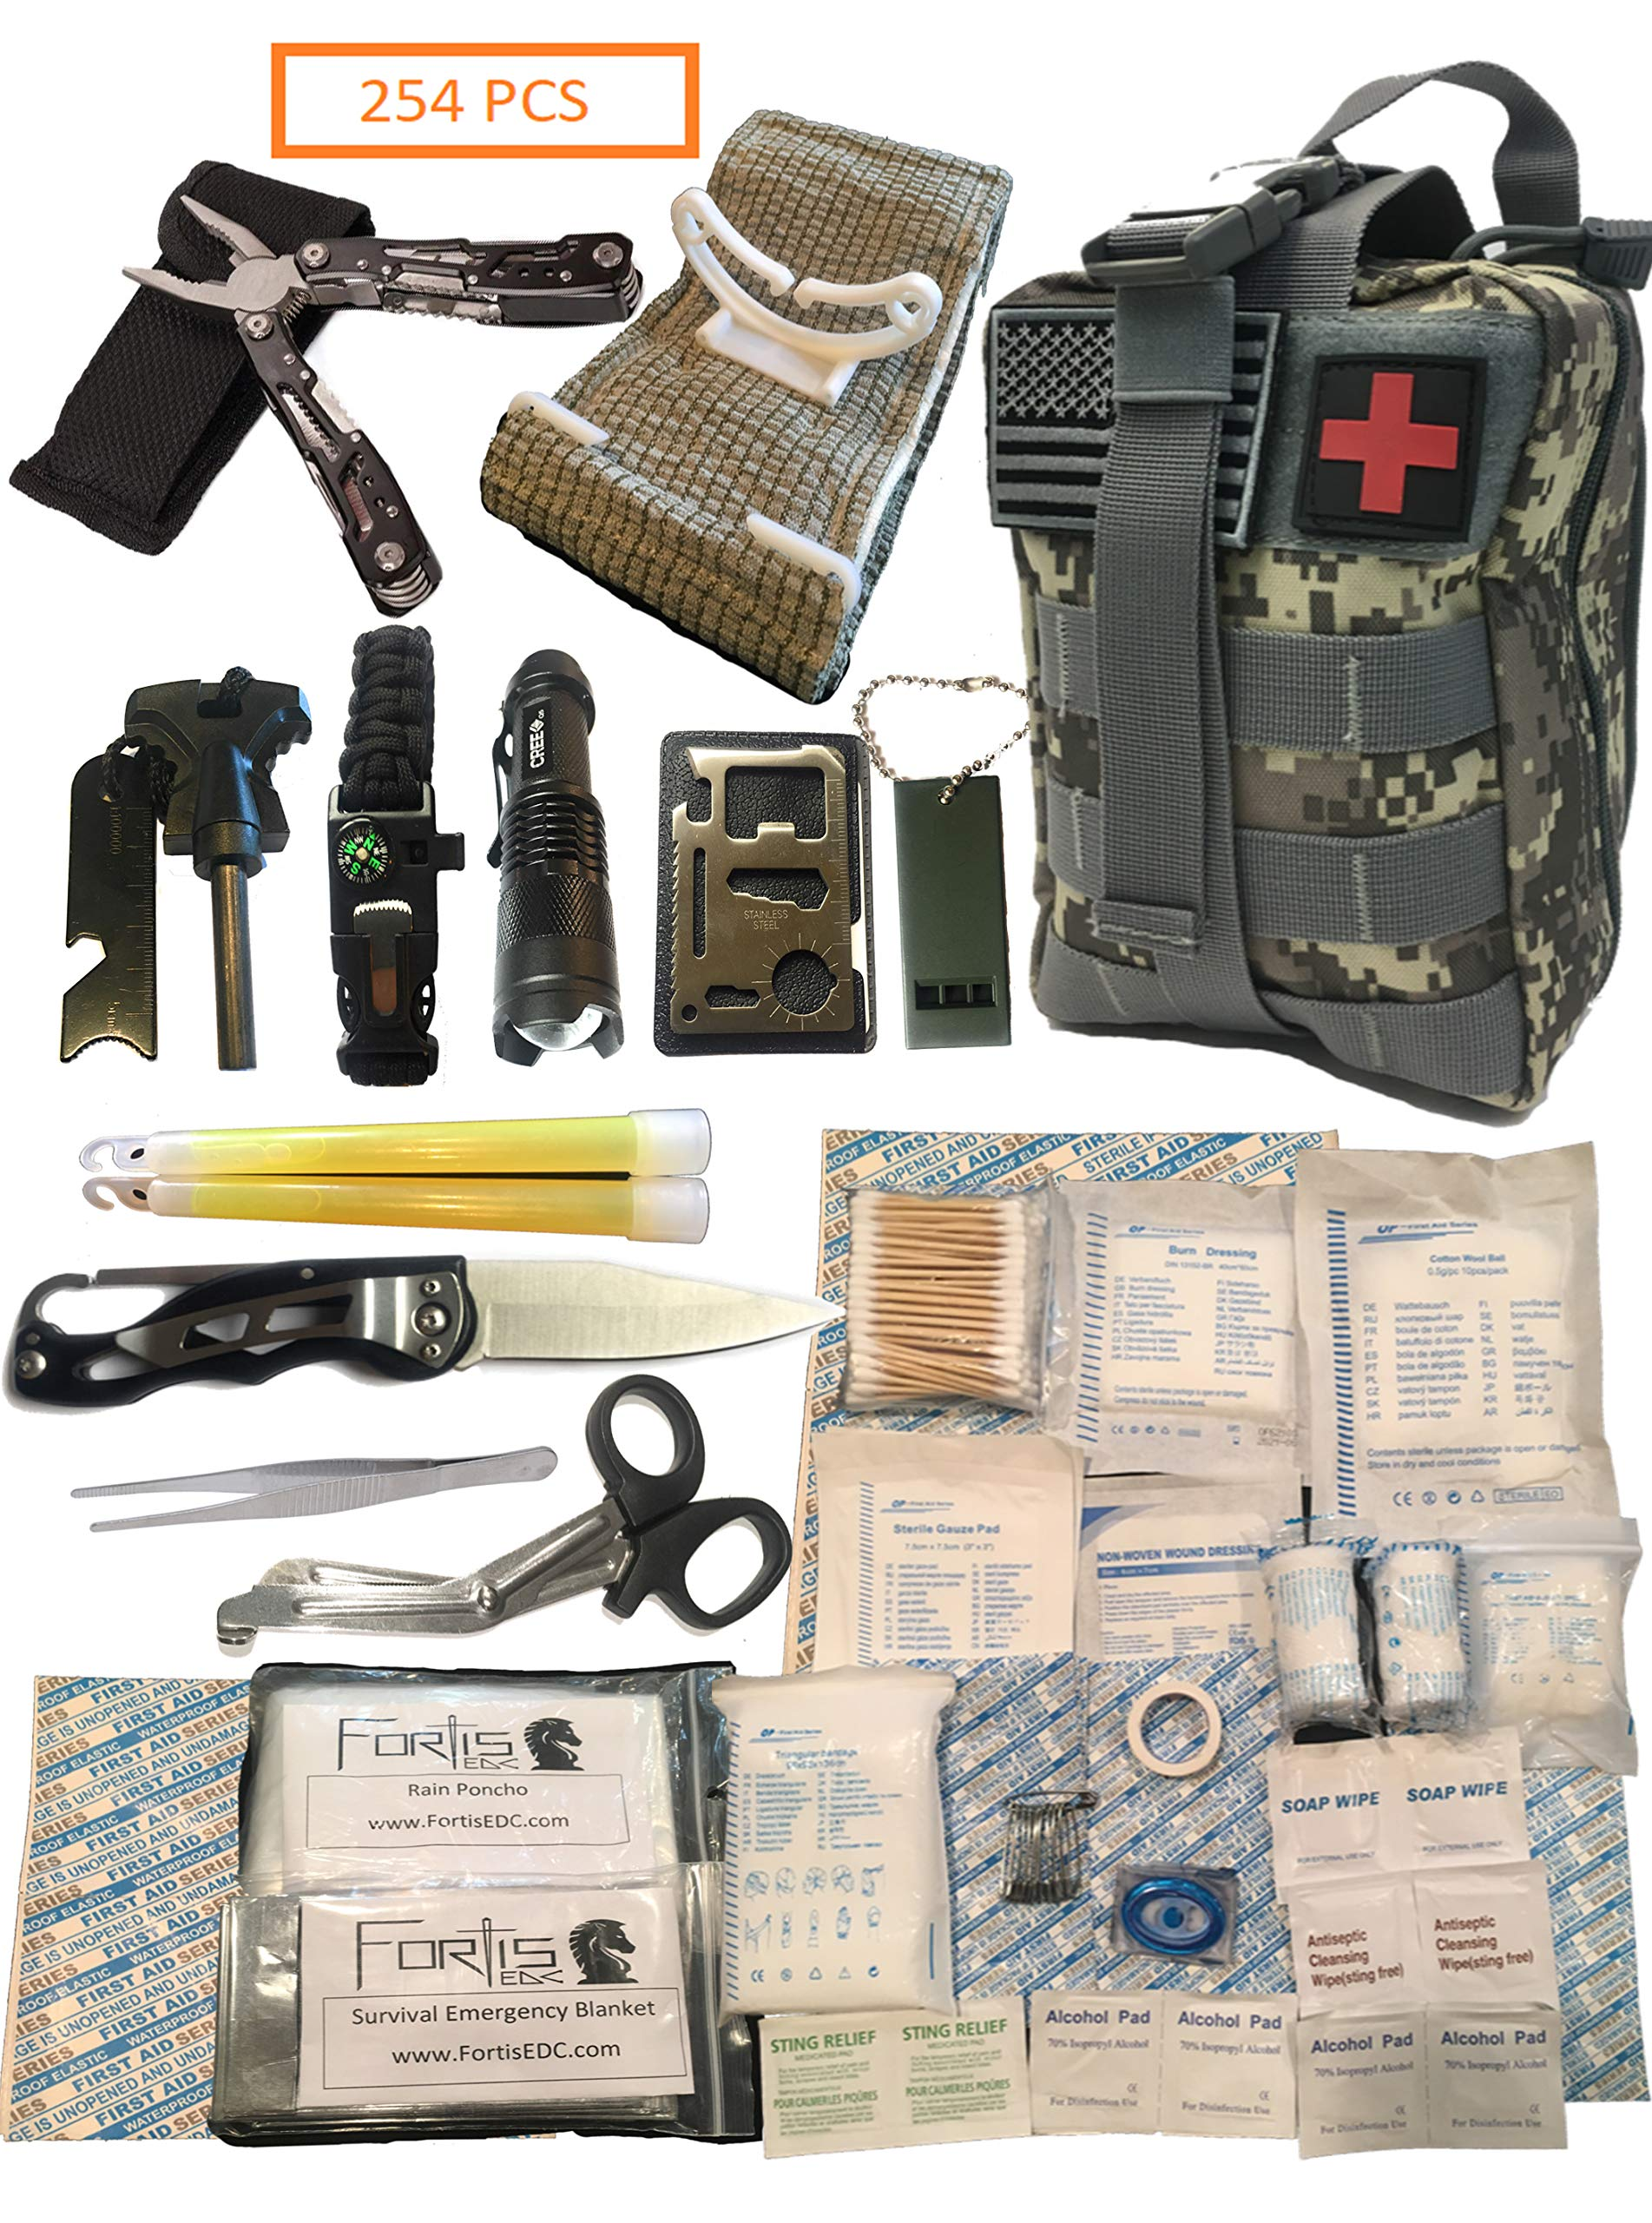 Fortis EDC Emergency First Aid Survival Kit Molle Bag Tactical IFAK for Car Travel Camping Hiking RV - with Israeli Bandage 4 inch Trauma Bleed Stop and Full Size Multi-Tool CPR Mask - 254 Piece by Fortis EDC